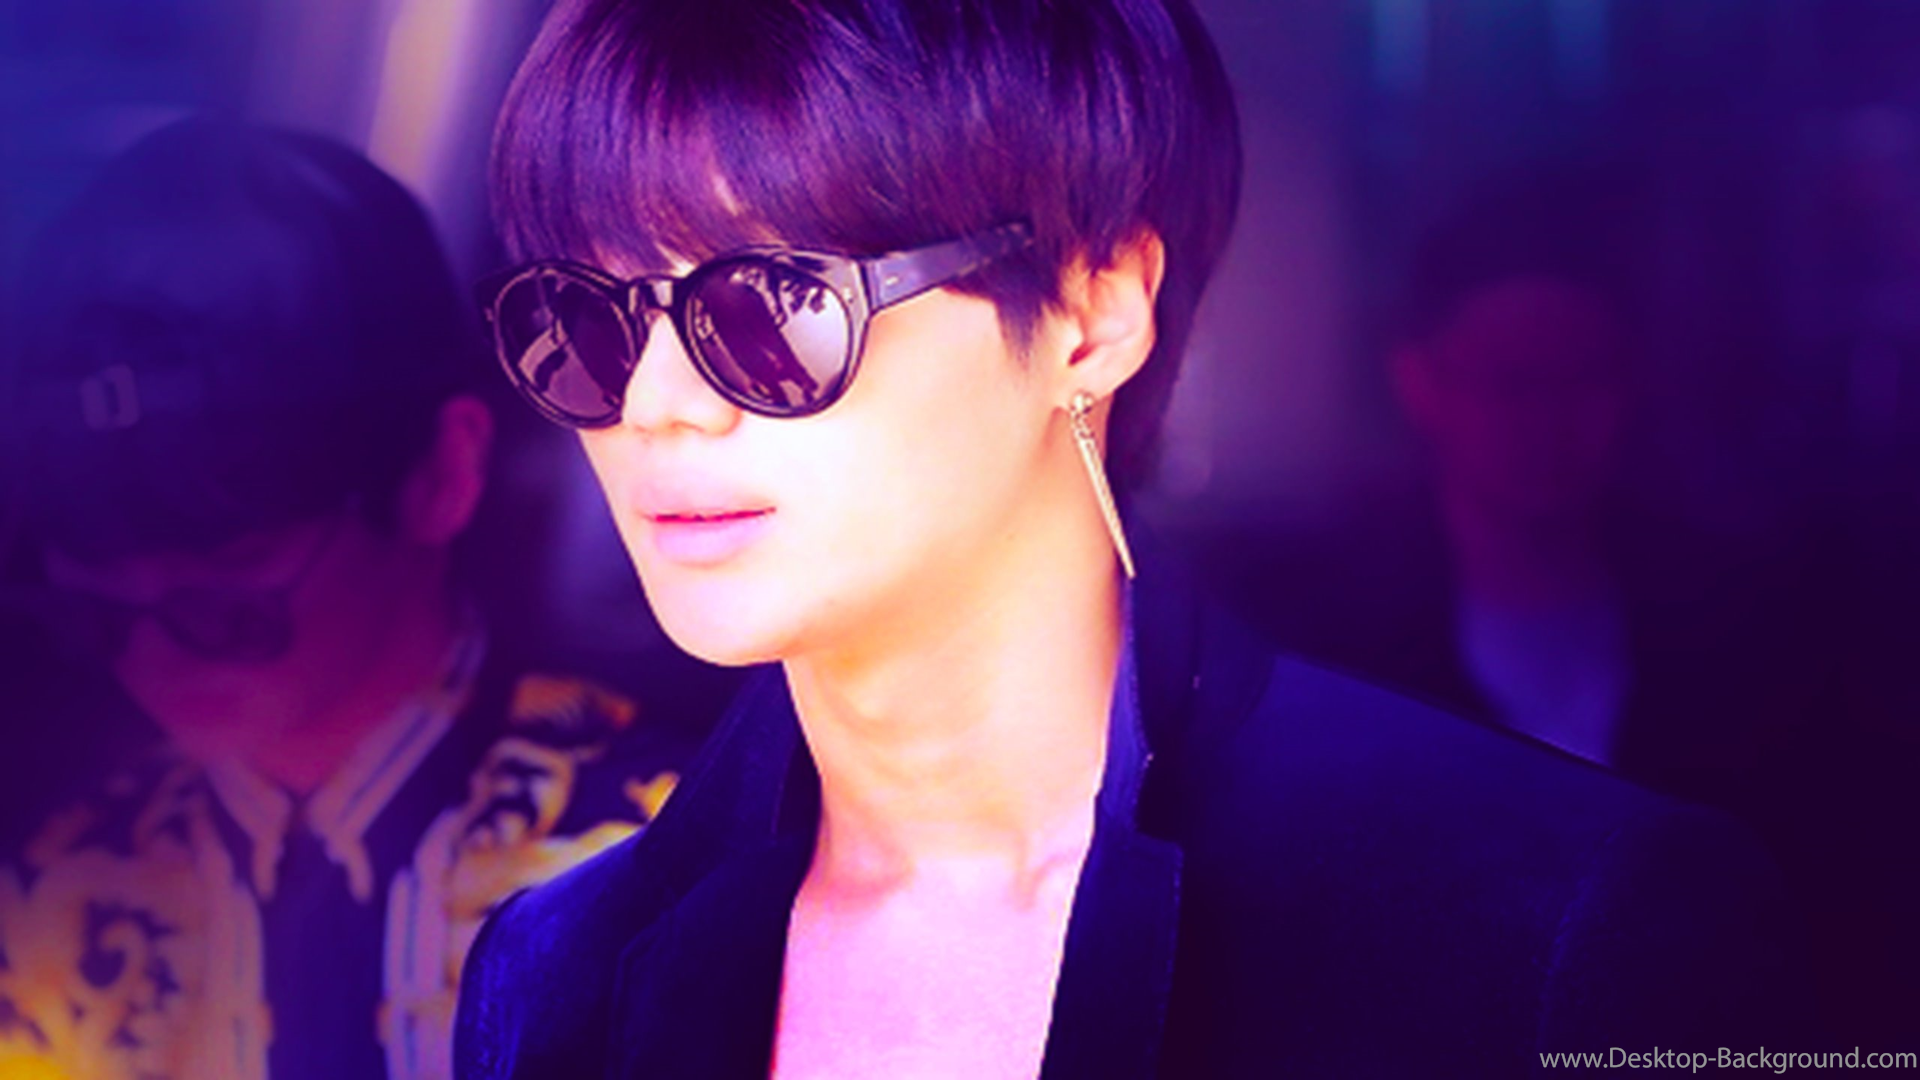 Fashionista Taemin Wallpapers Lee Taemin Wallpapers 1920x1080